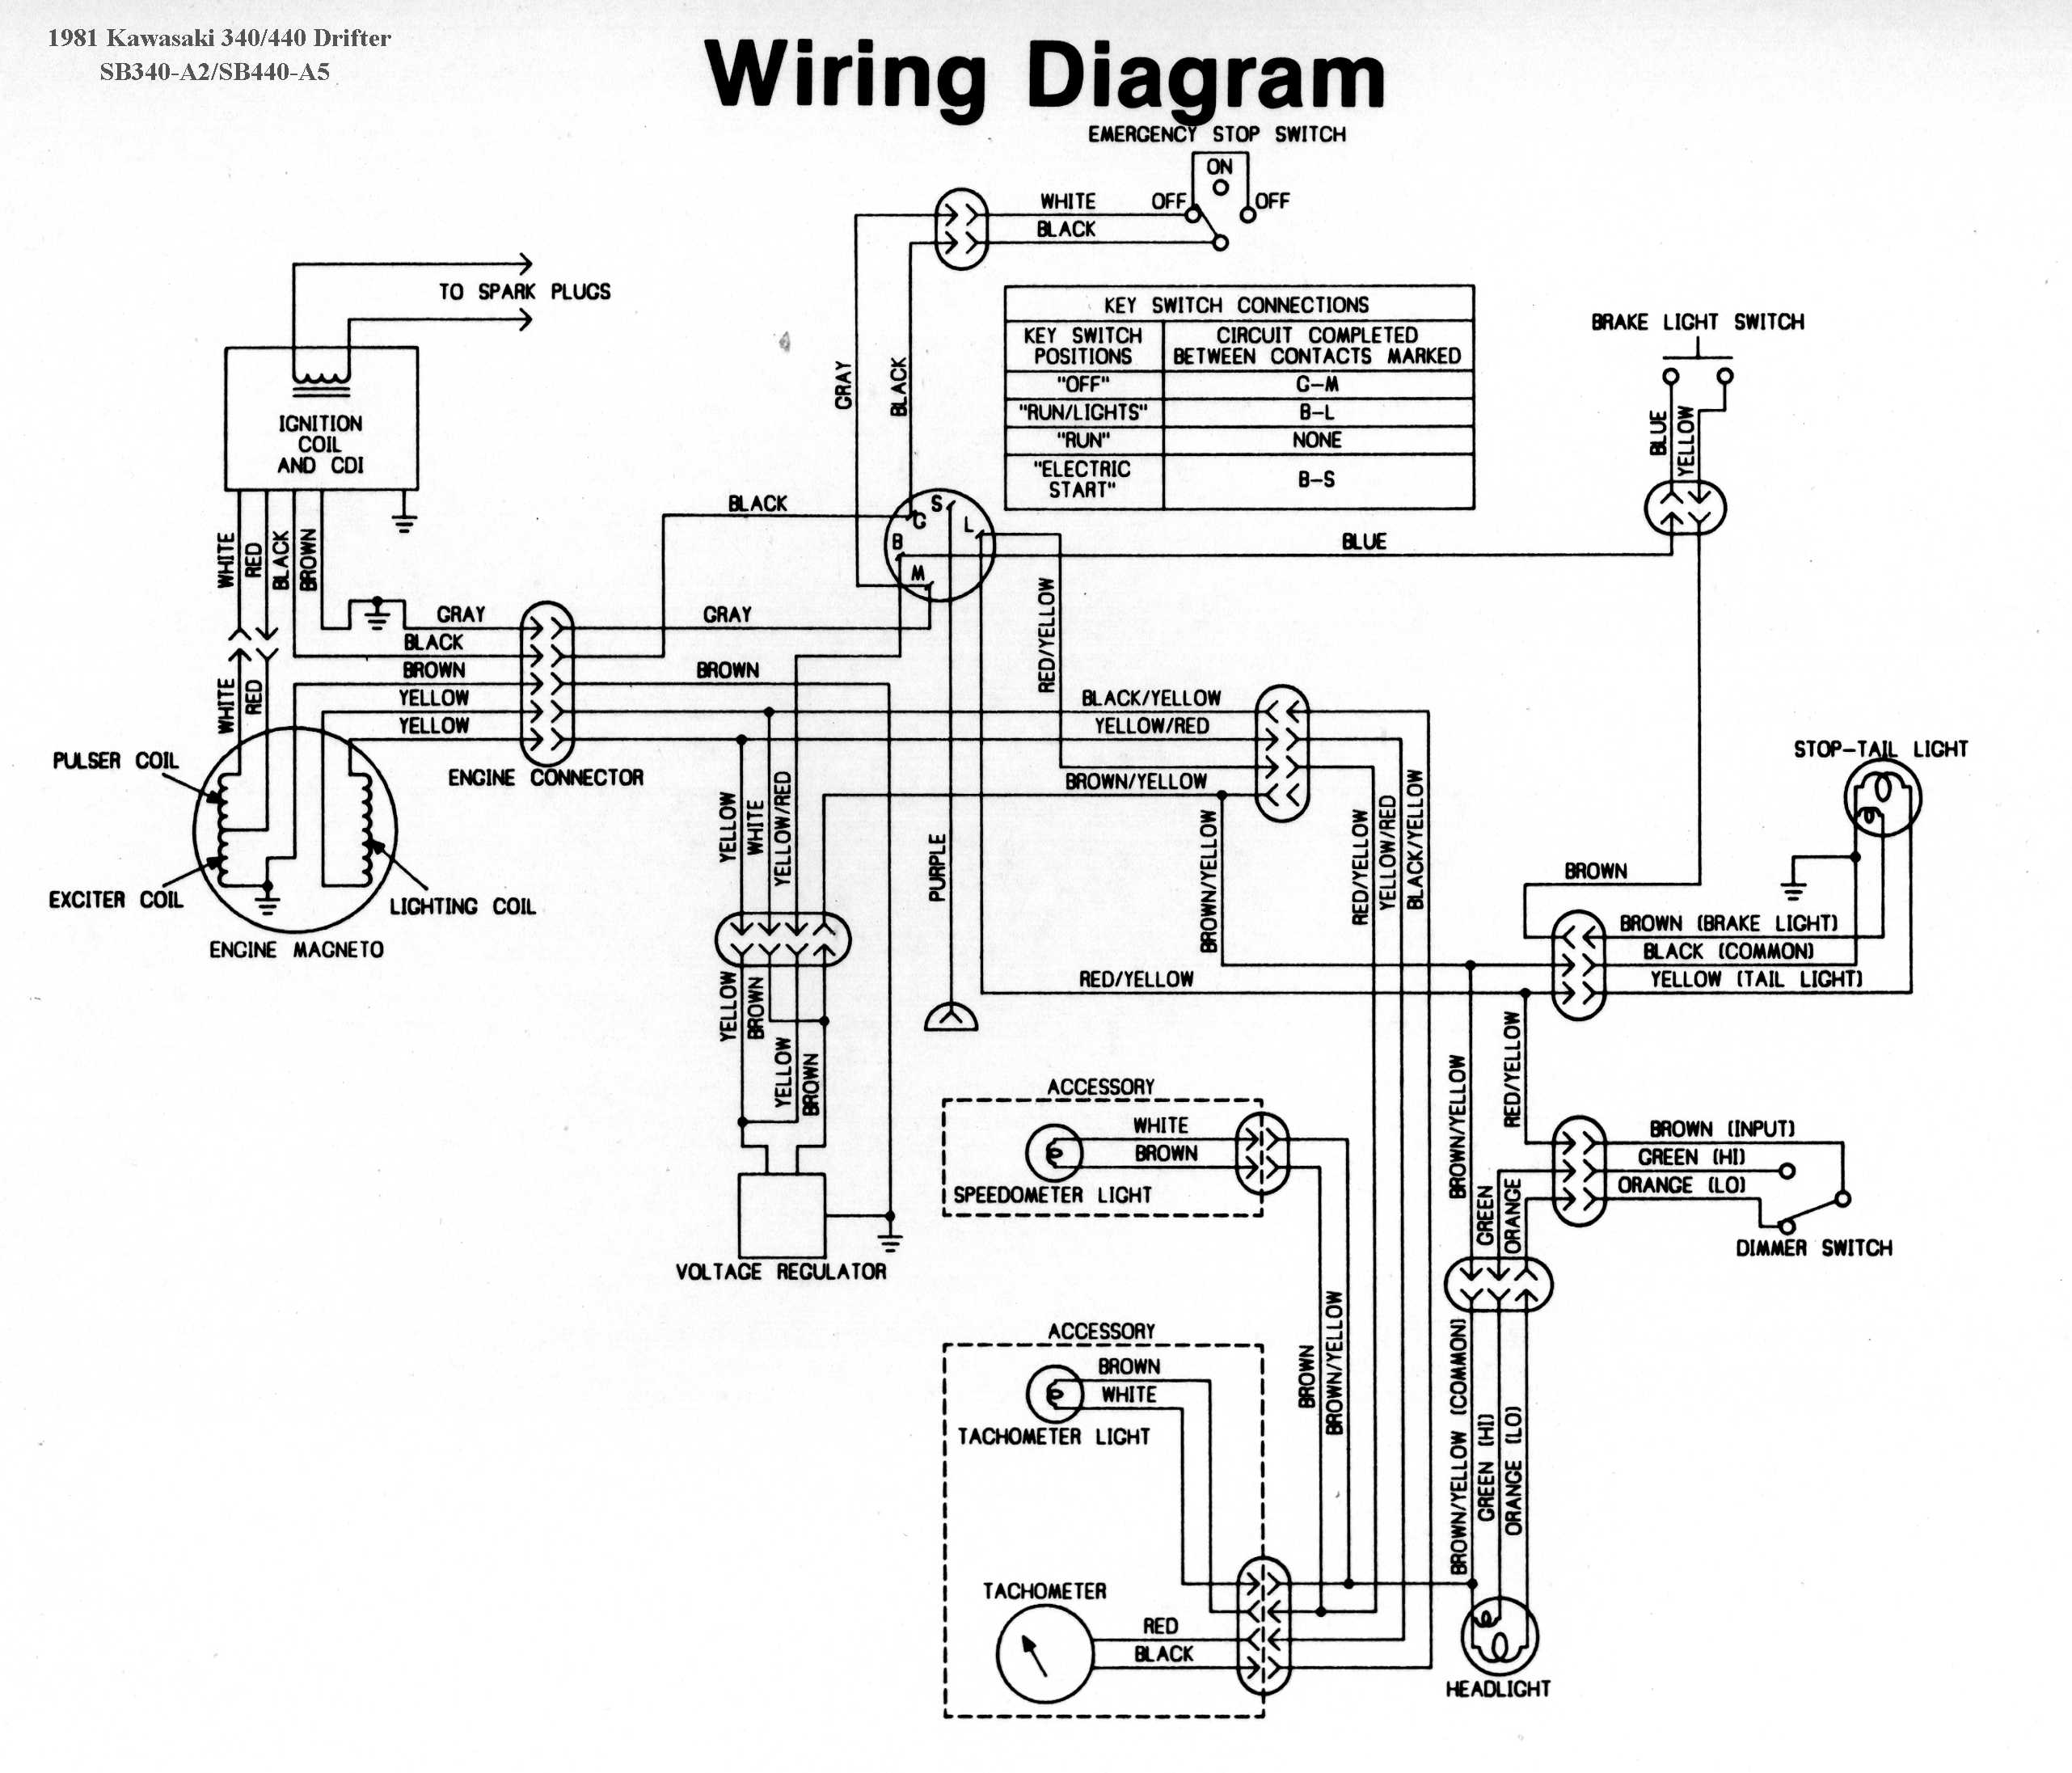 Kawasaki 250 Ltd Wiring Diagram Libraries 4 Wheeler 2007 Librarykawasaki Volvo Diagrams 1980 440